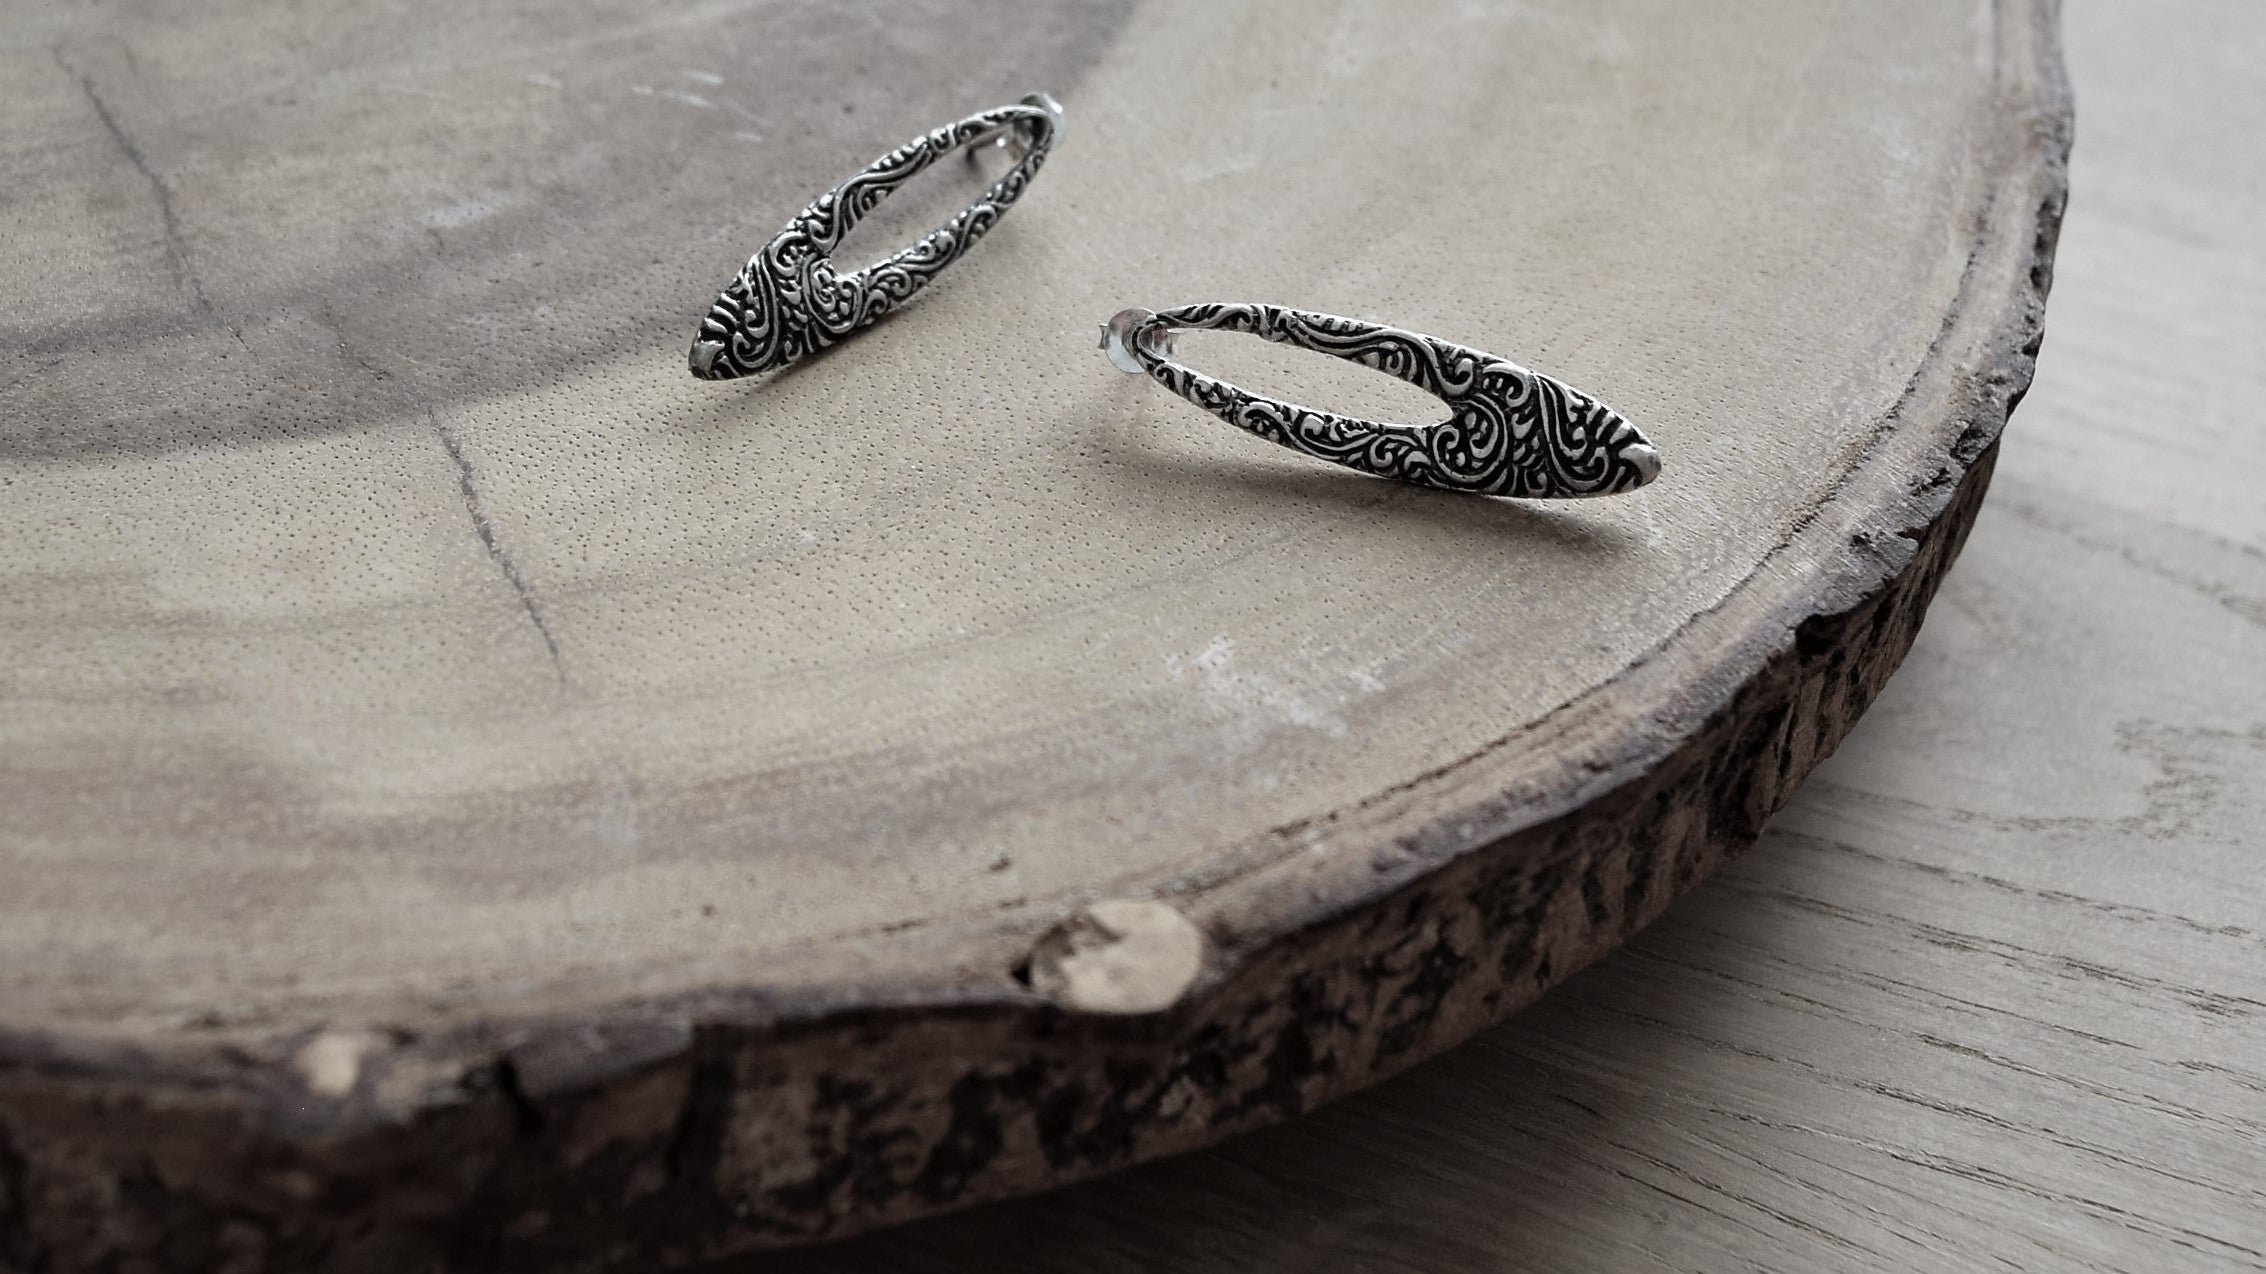 Shop online for gift for Chinese New Year and Valentine's Day: simple elegant oval shaped silver earrings with intricate patterns designed in Singapore, handmade in Bali.